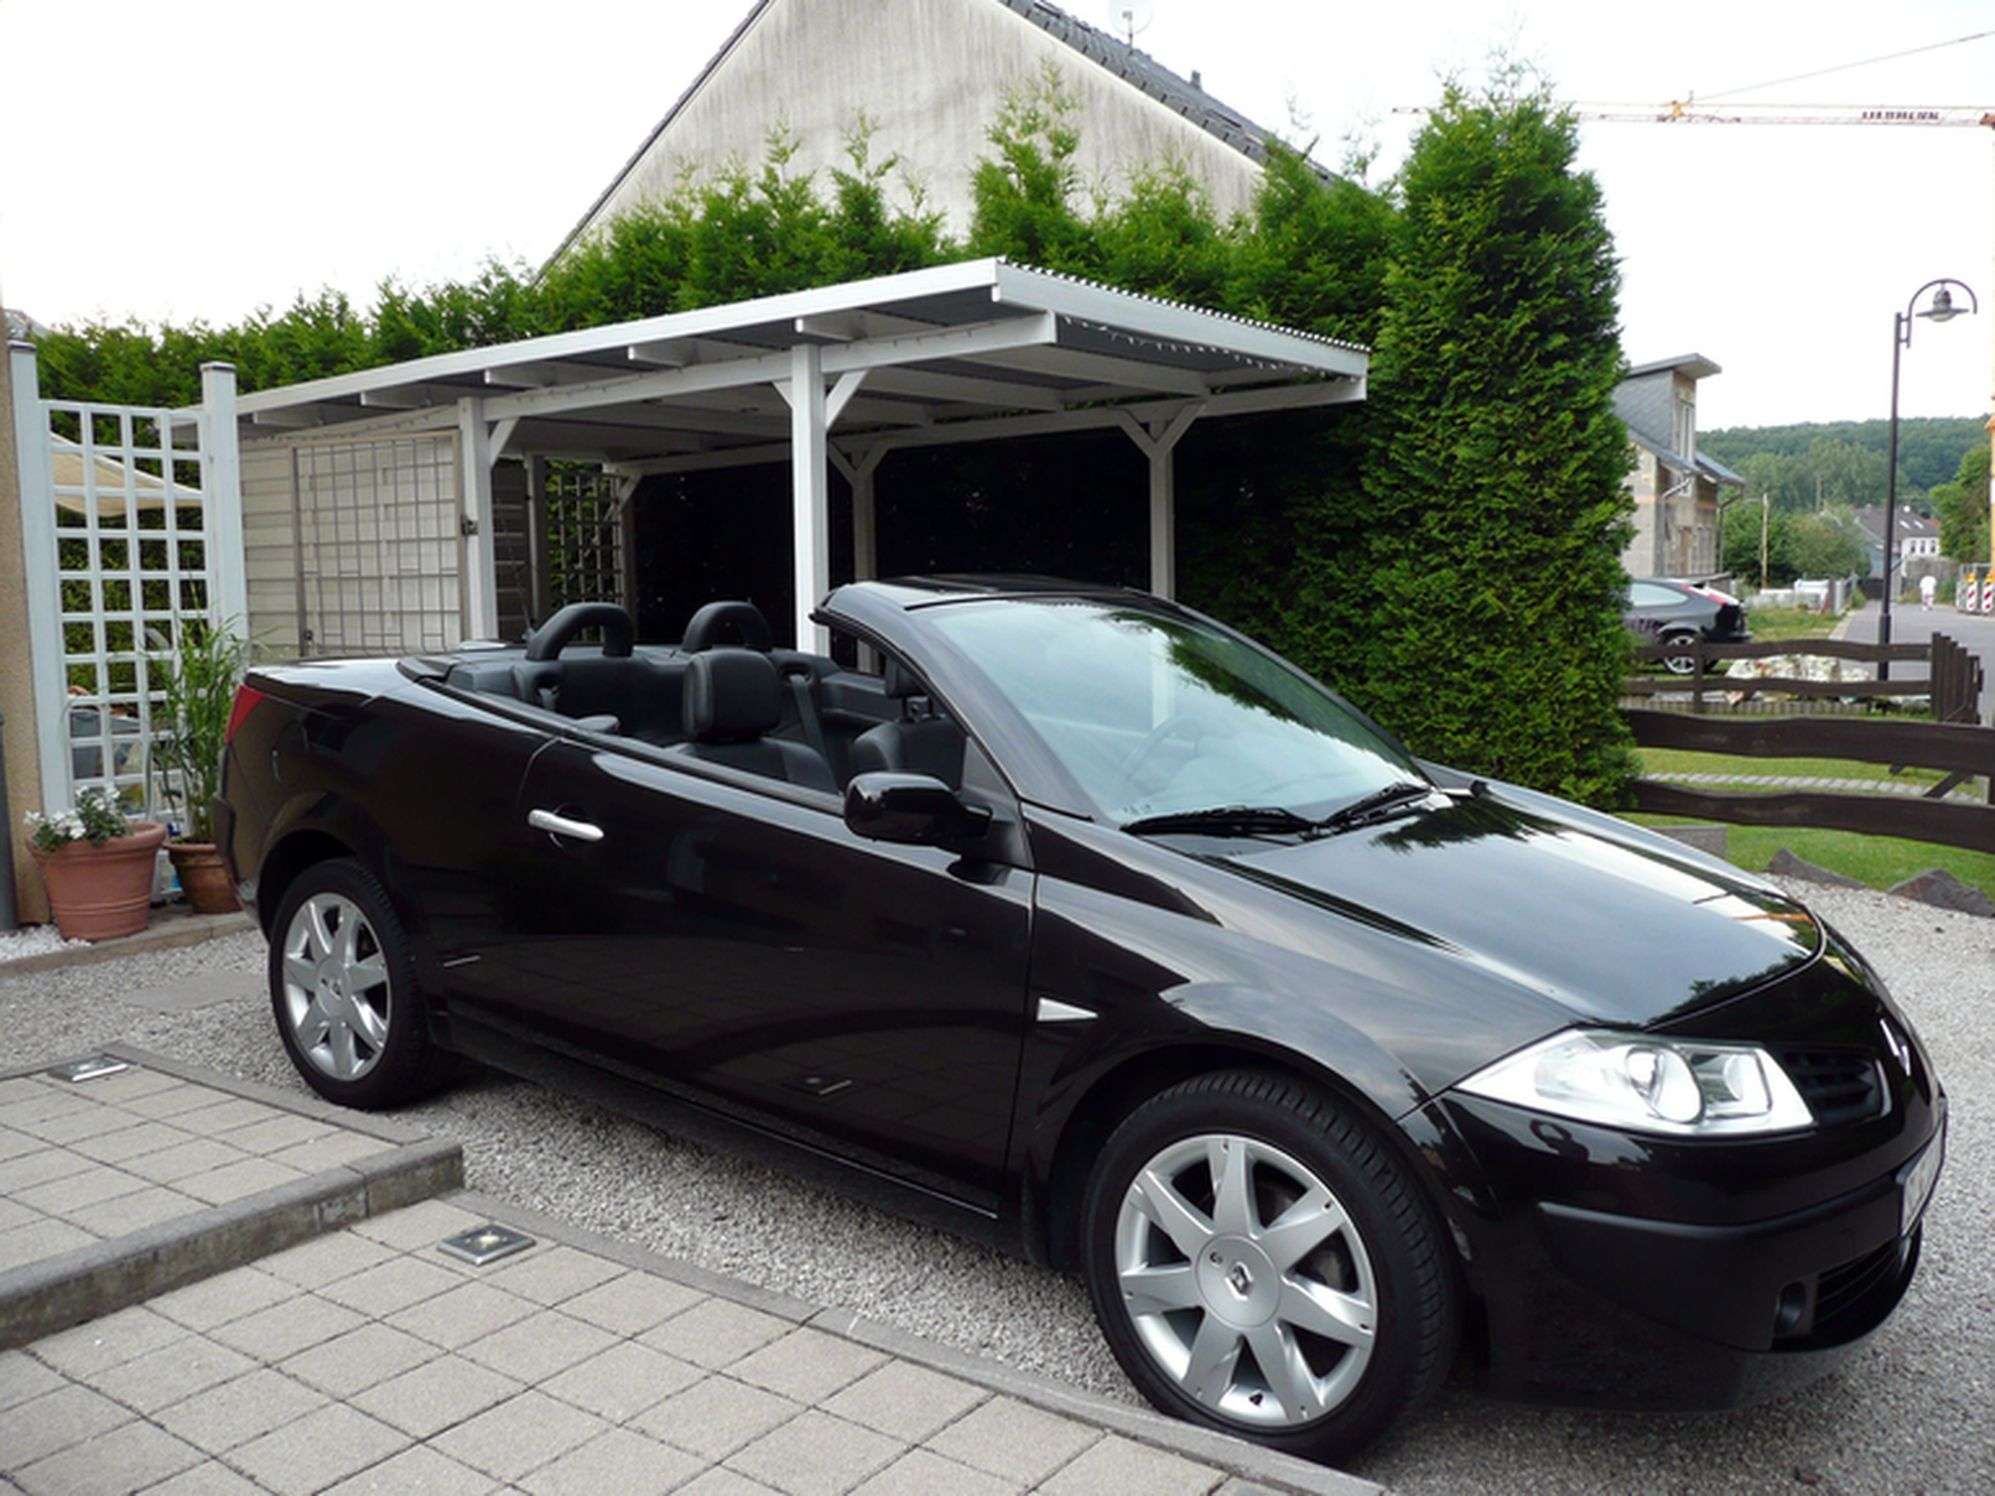 Photos Of Renault Megane 2 0 Coupe Cabriolet Dynamique Photo Renault Megane 2 0 Coupe Cabriolet Dynamique 04 Jpg Gr8autophoto Com